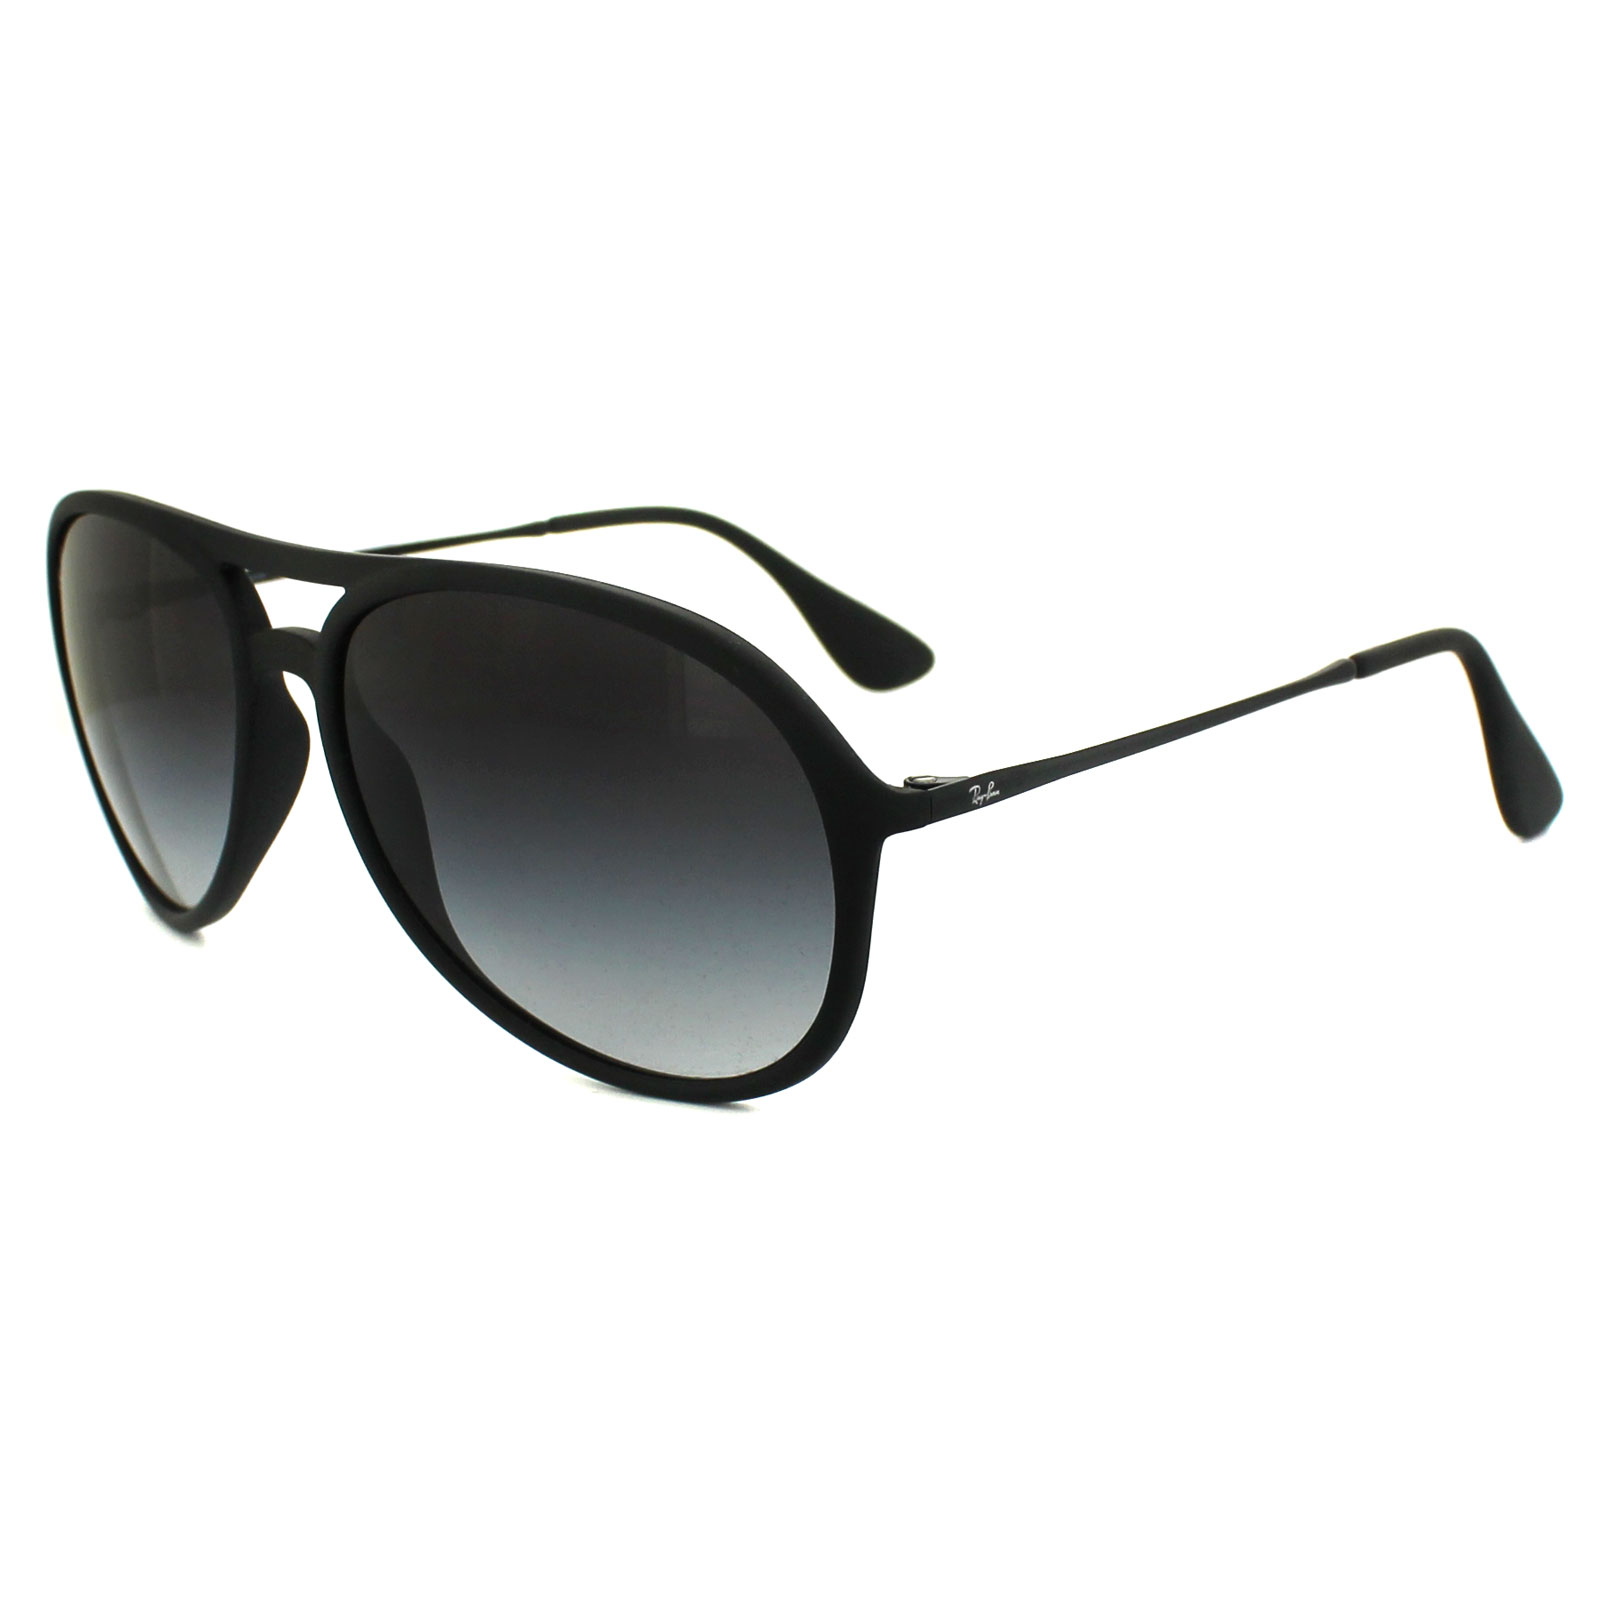 Sunglasses Fashion Accessories Uk